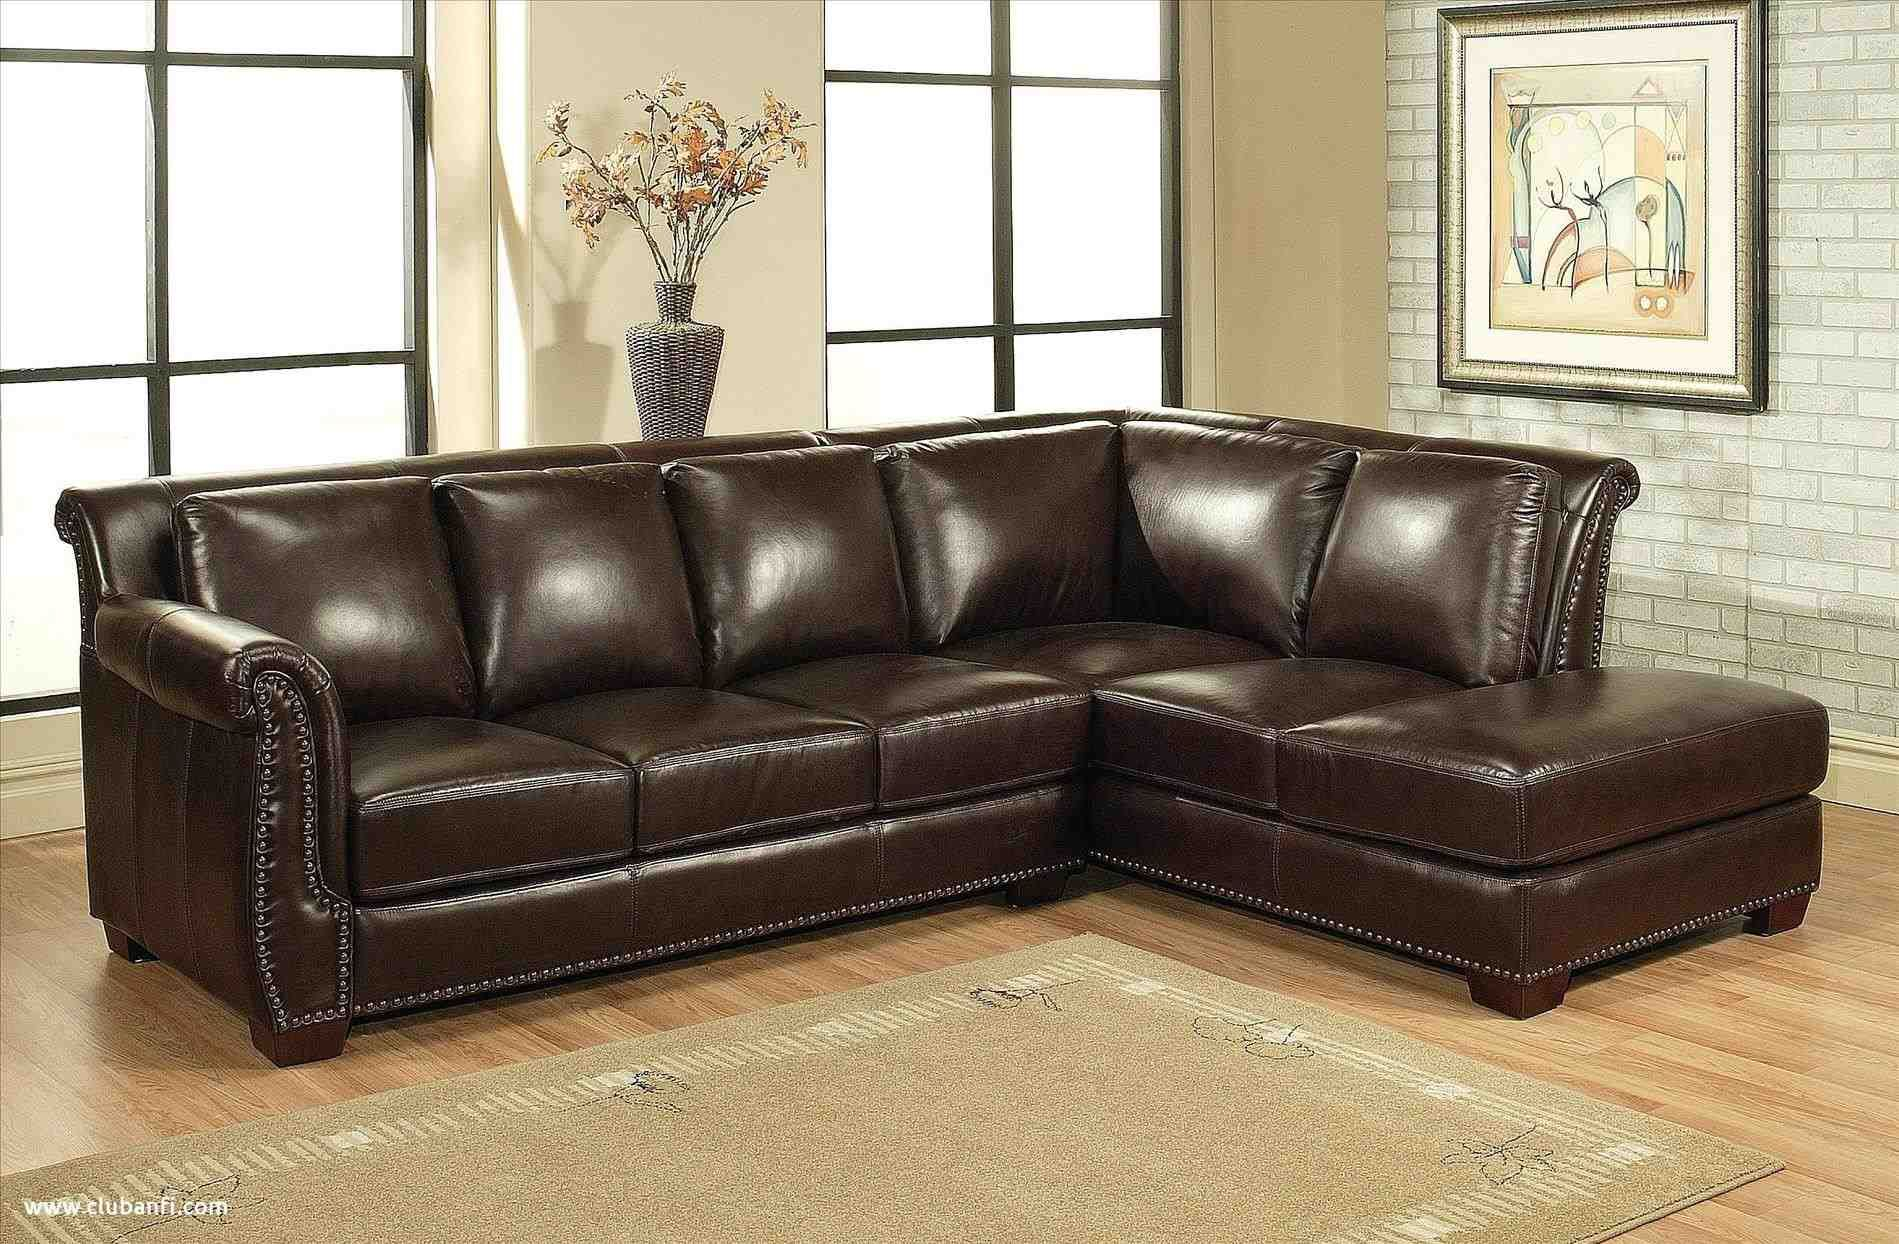 Couches Perth Cheap Leather Sofas Perth Wa Brokeasshome